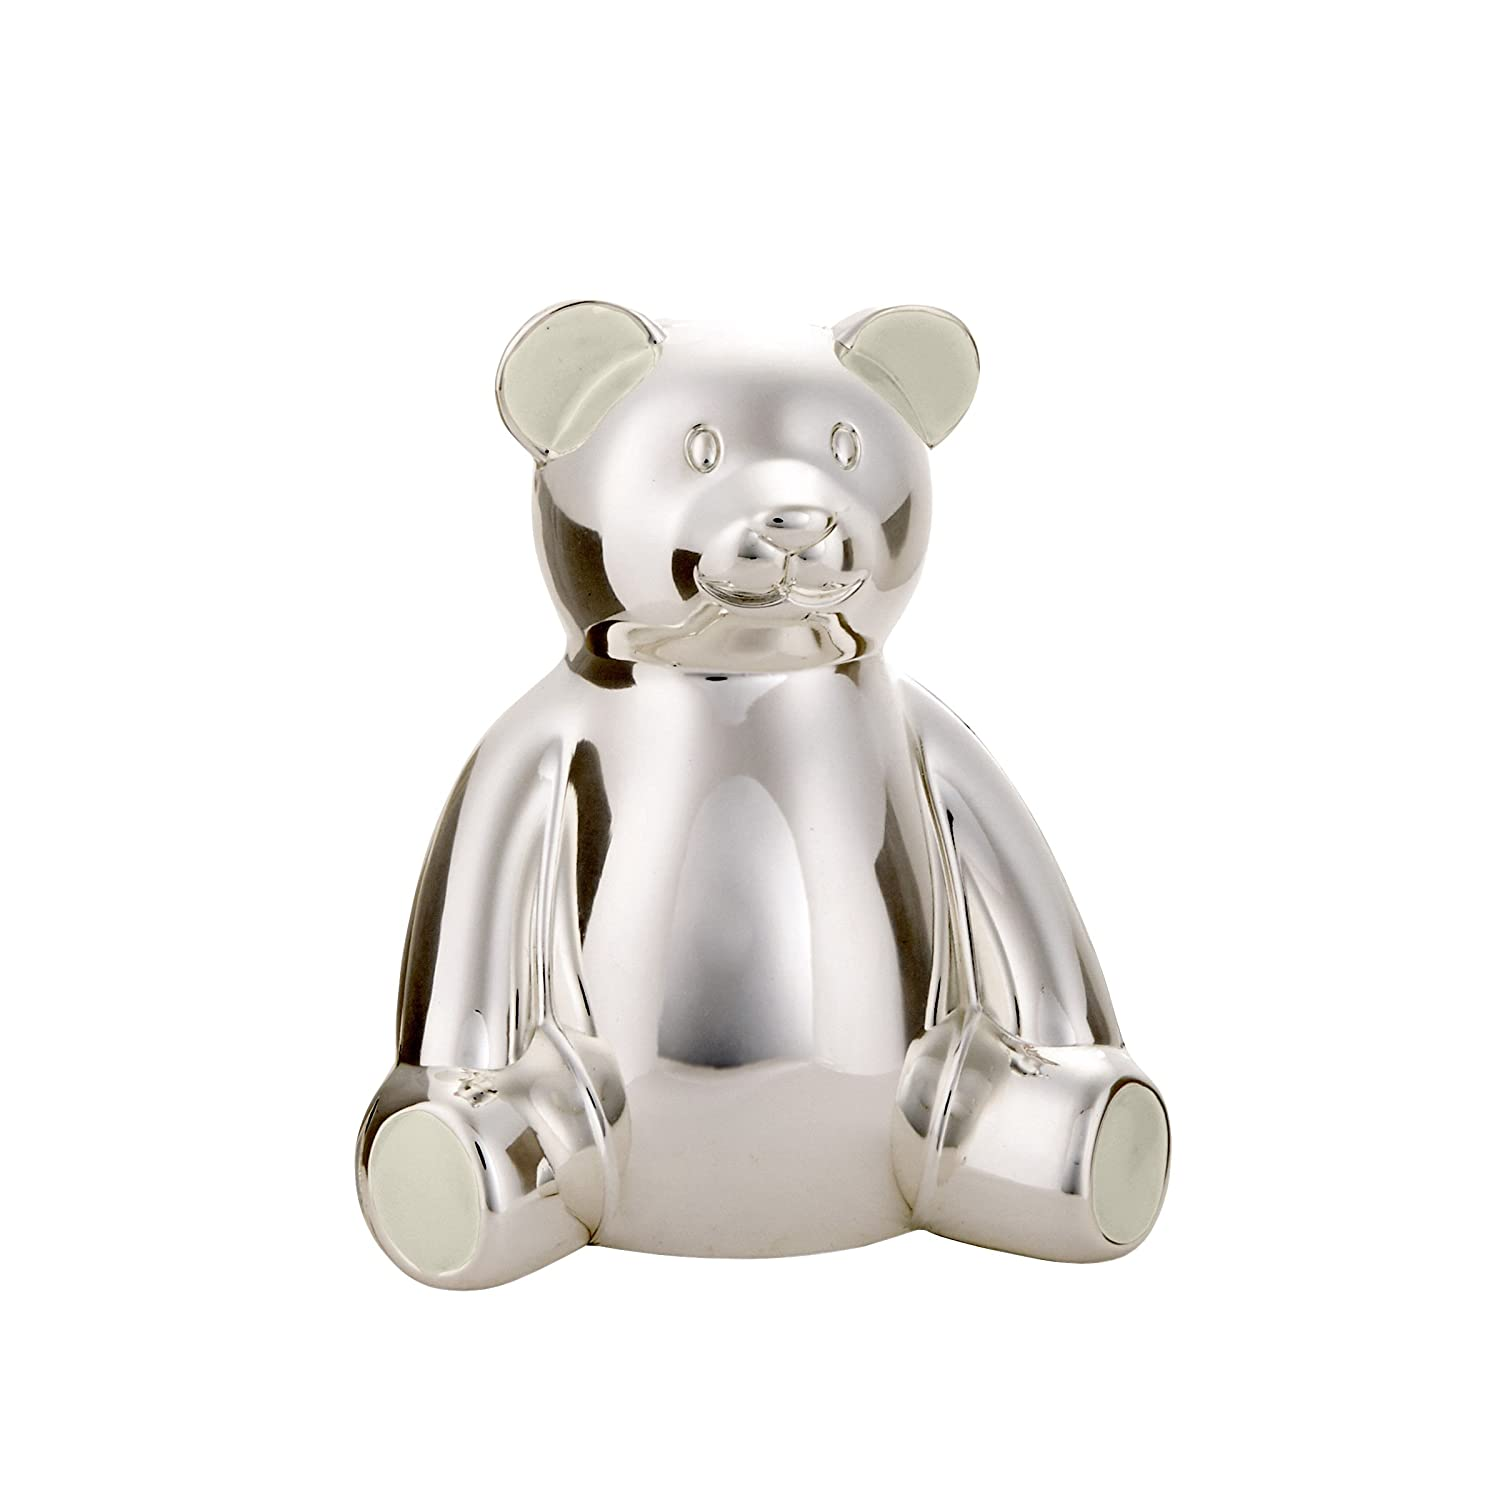 Carter's Large Silver Ceramic Piggy Bank, 6.5 W x 7 H x 8.5 D C.R. Gibson - Baby BB1-20793